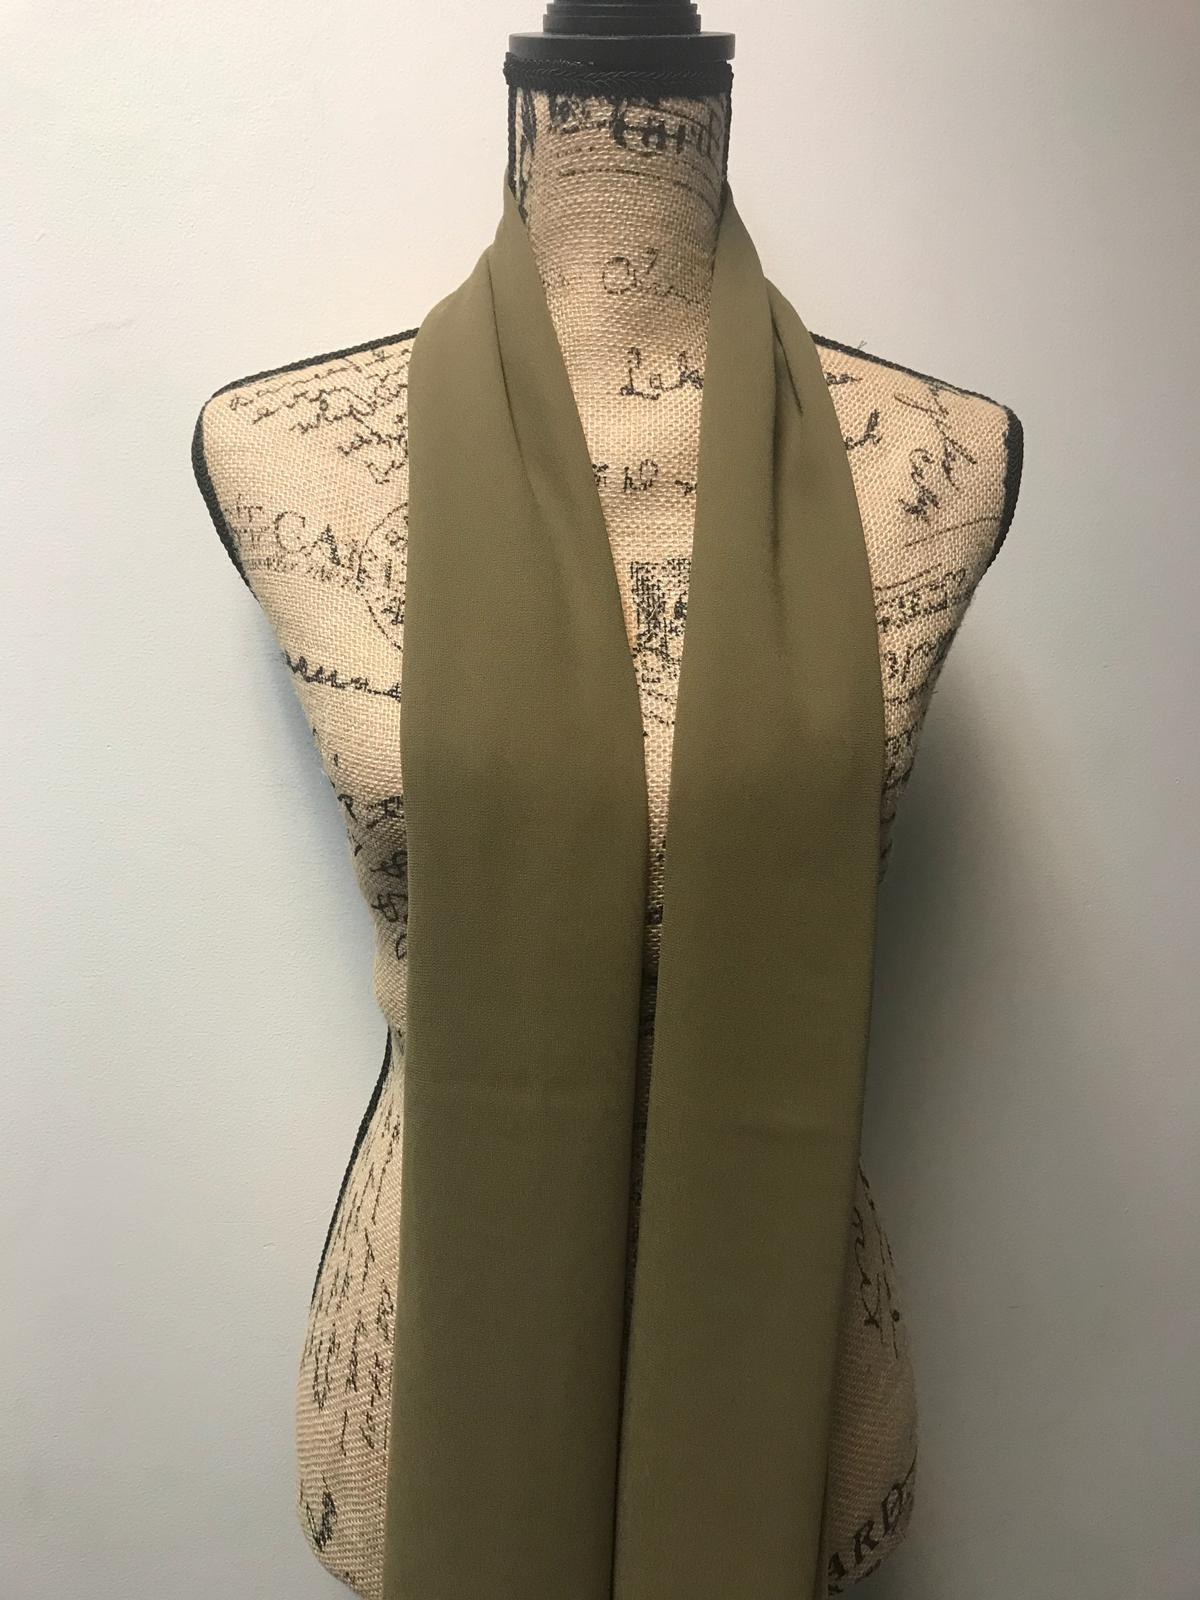 FERADJE London Chiffon Hijab Light Olive